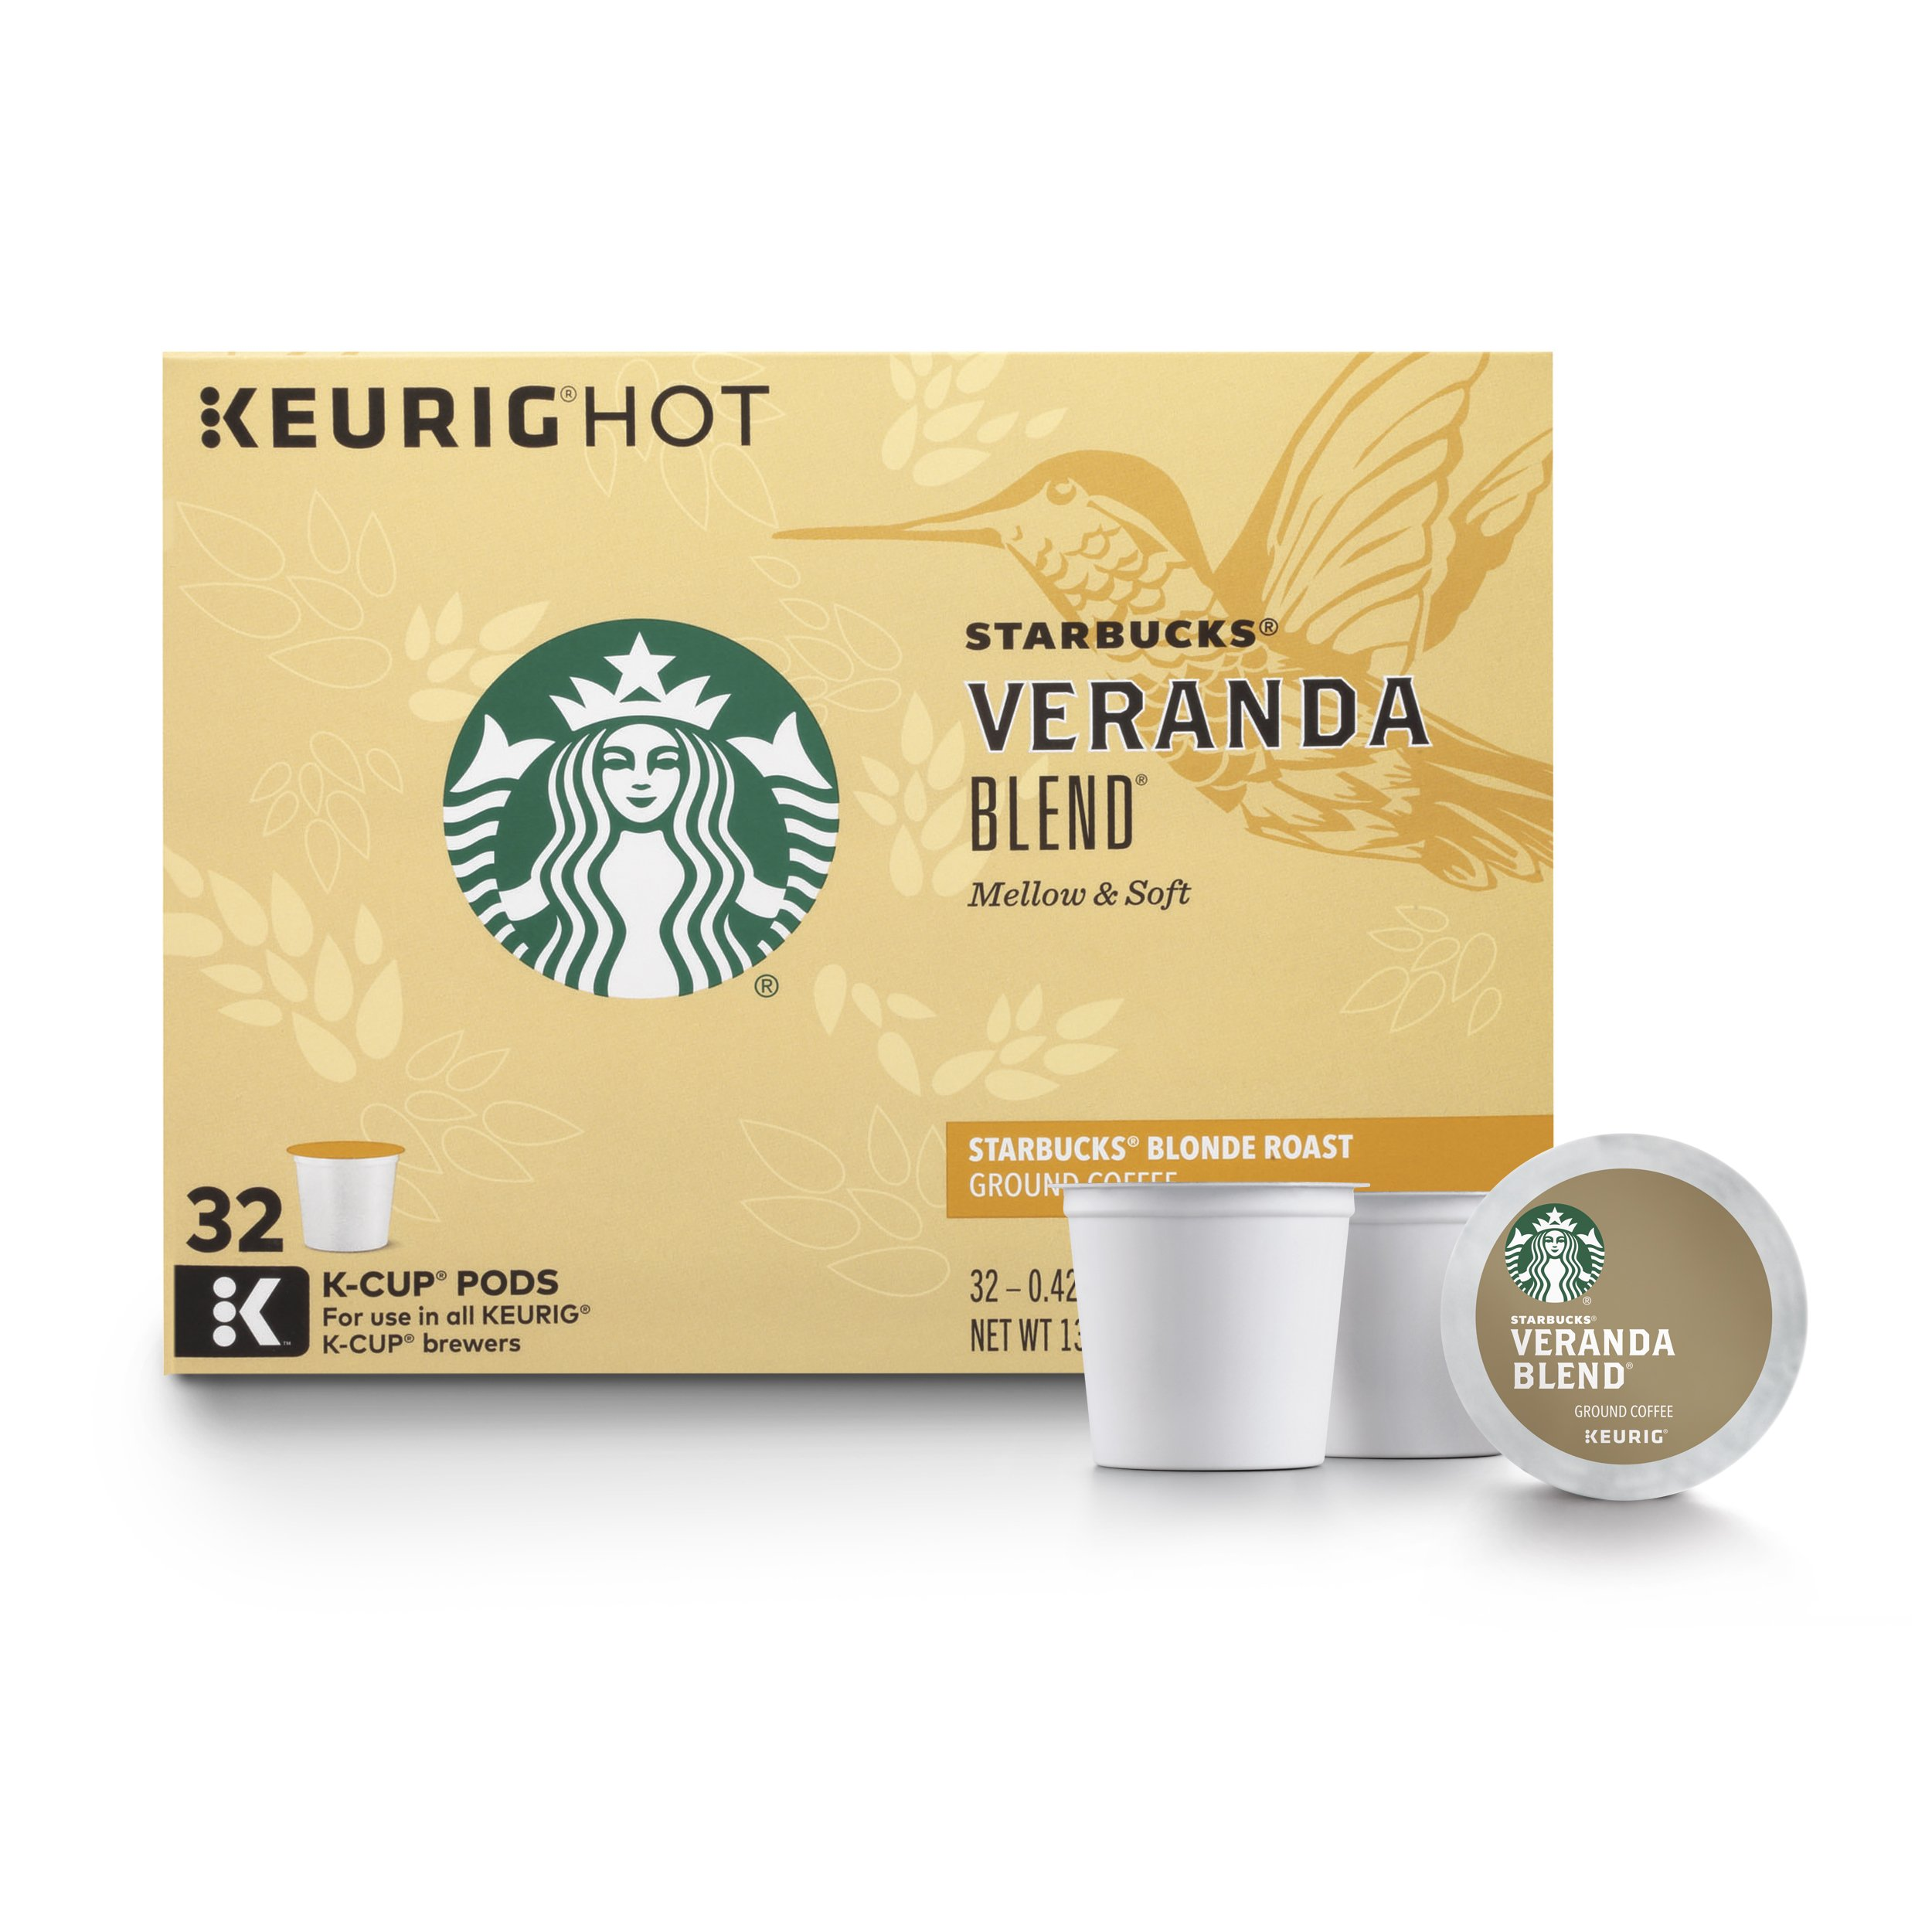 Starbucks Veranda Blend Blonde Roast Single Cup Coffee for Keurig Brewers, 32 Count